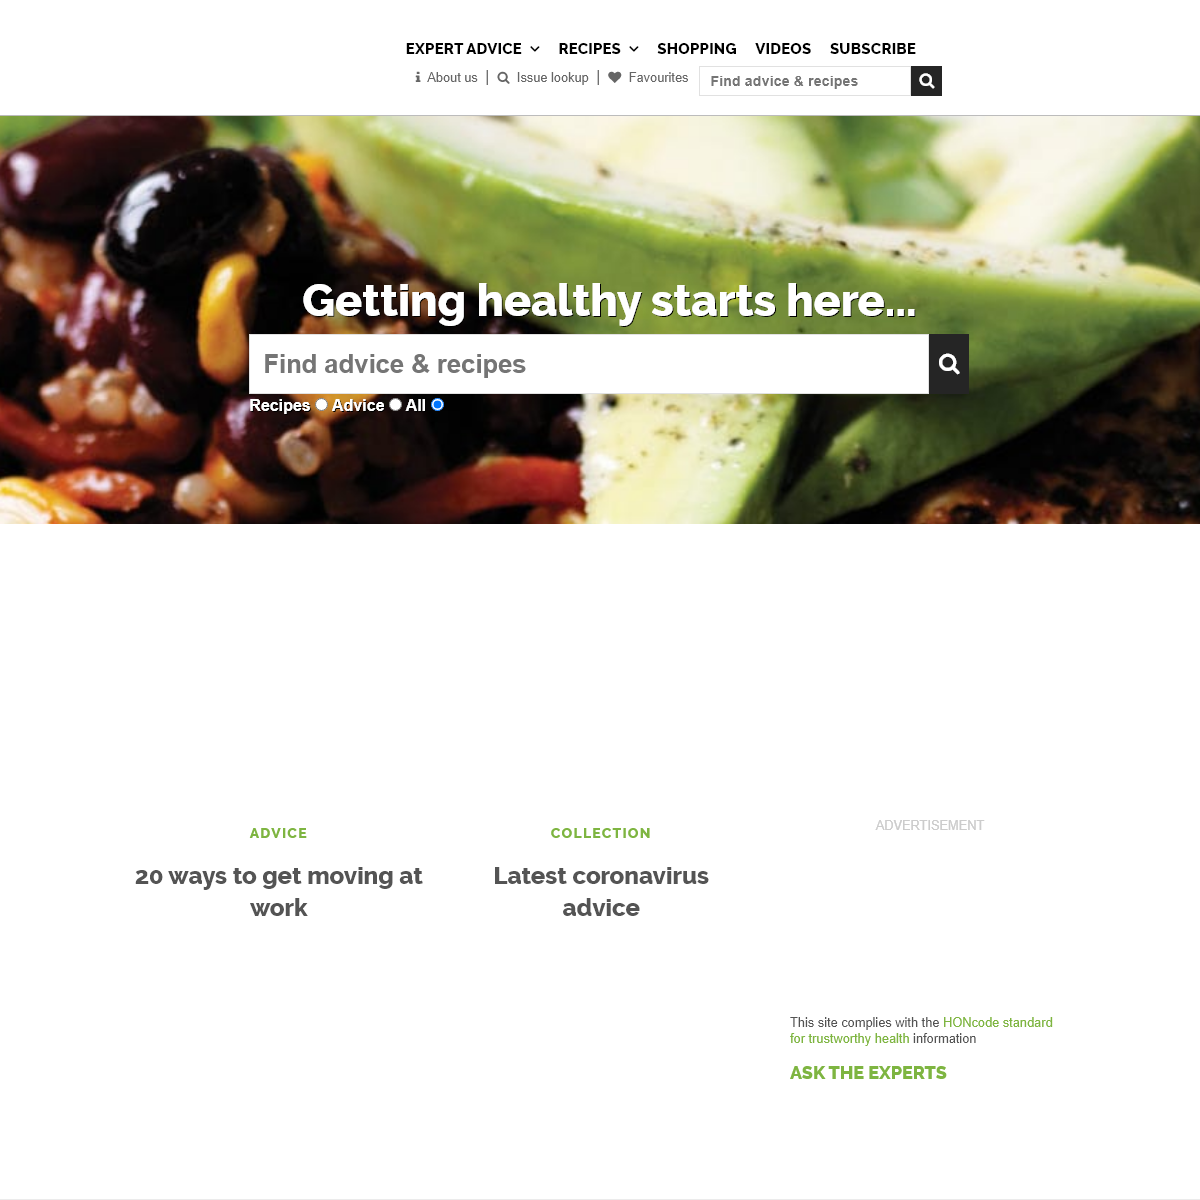 Healthy Food Guide - Delicious recipes and expert diet advice